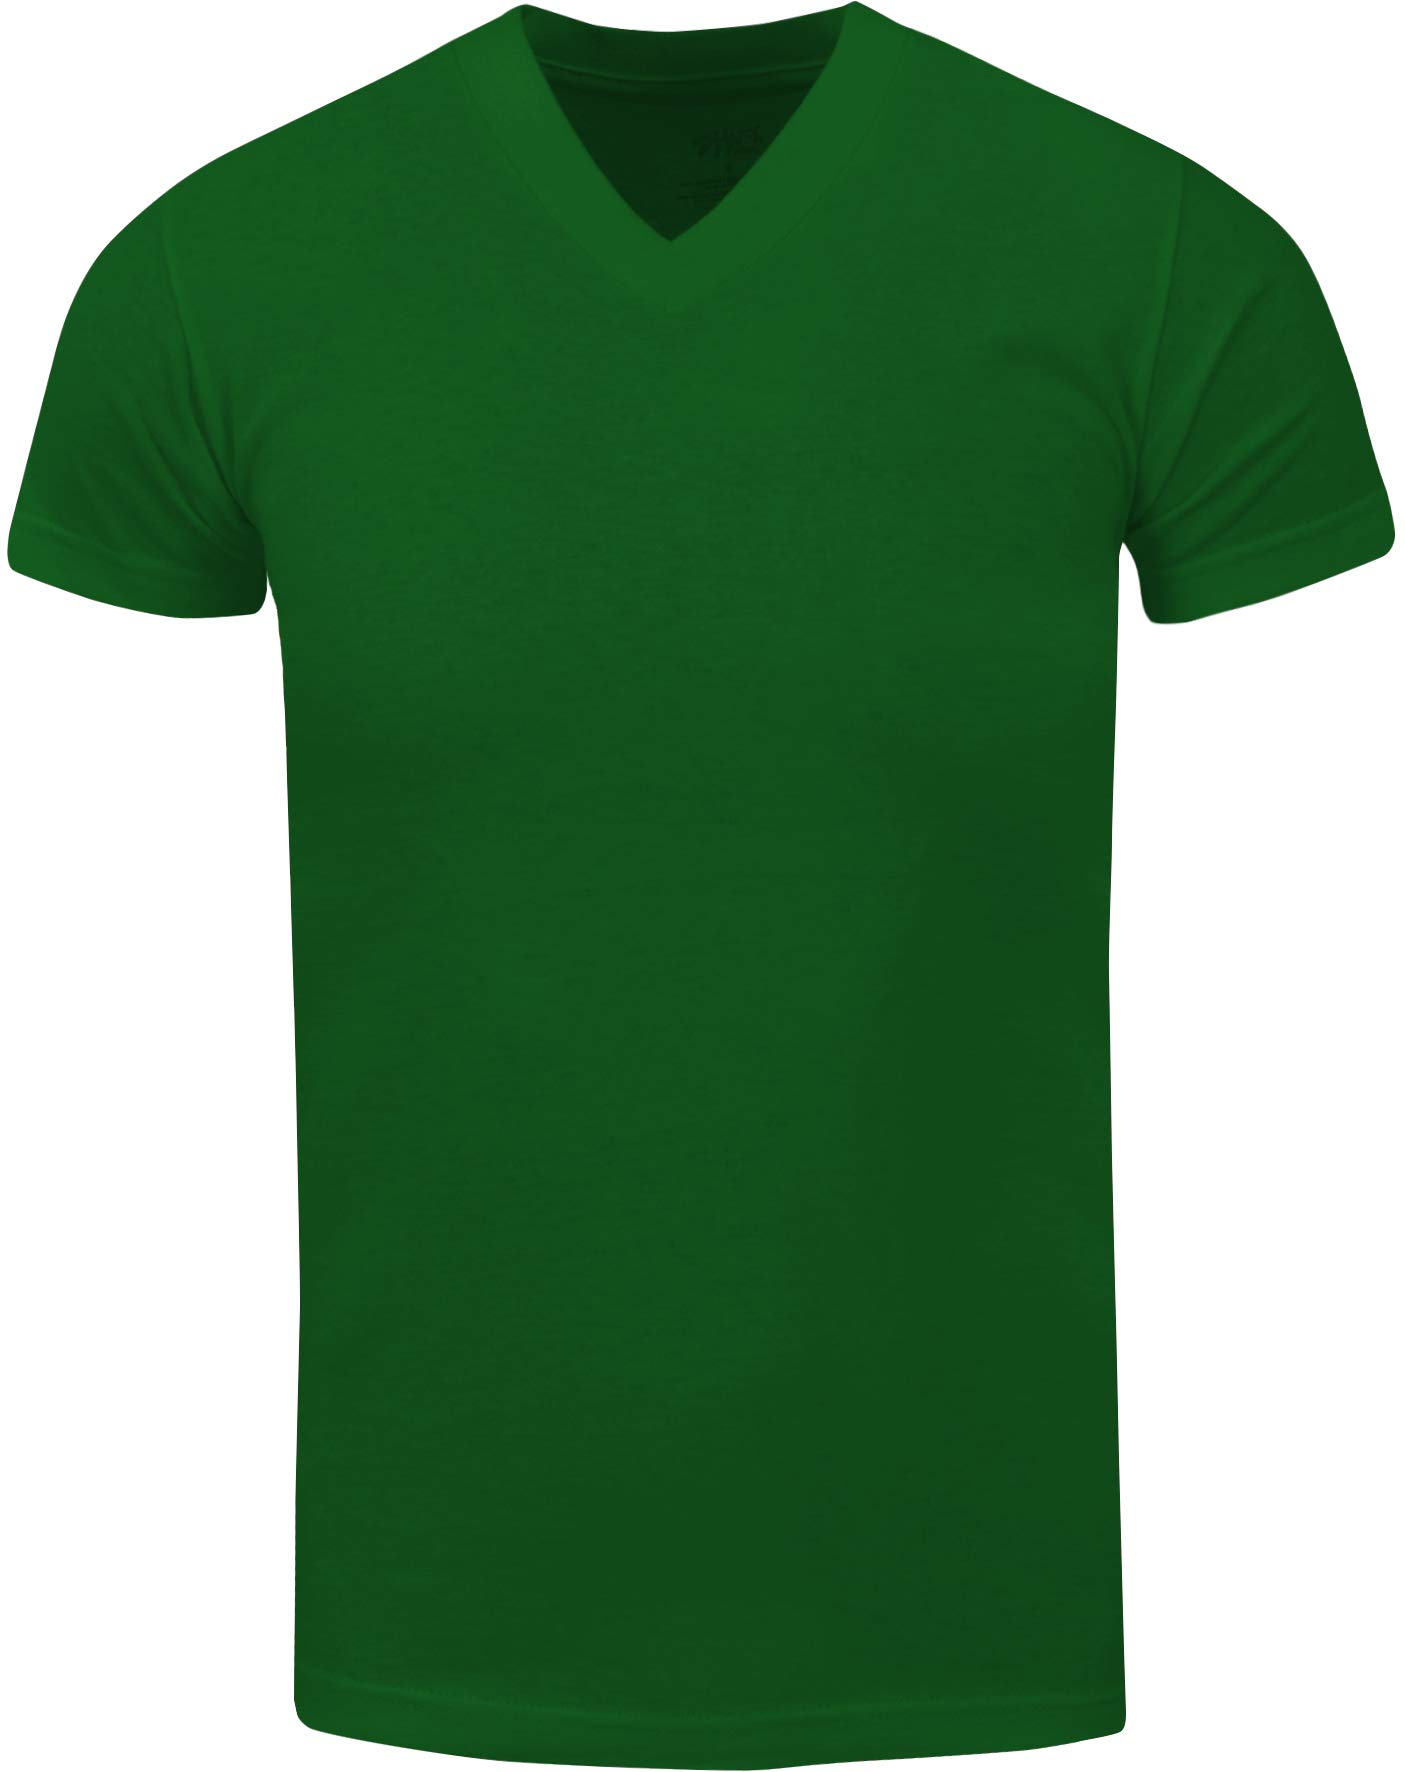 VNS06_ Active Mens Premium Cotton Heavy Weight V Neck Basic T Shirt Kelly Green